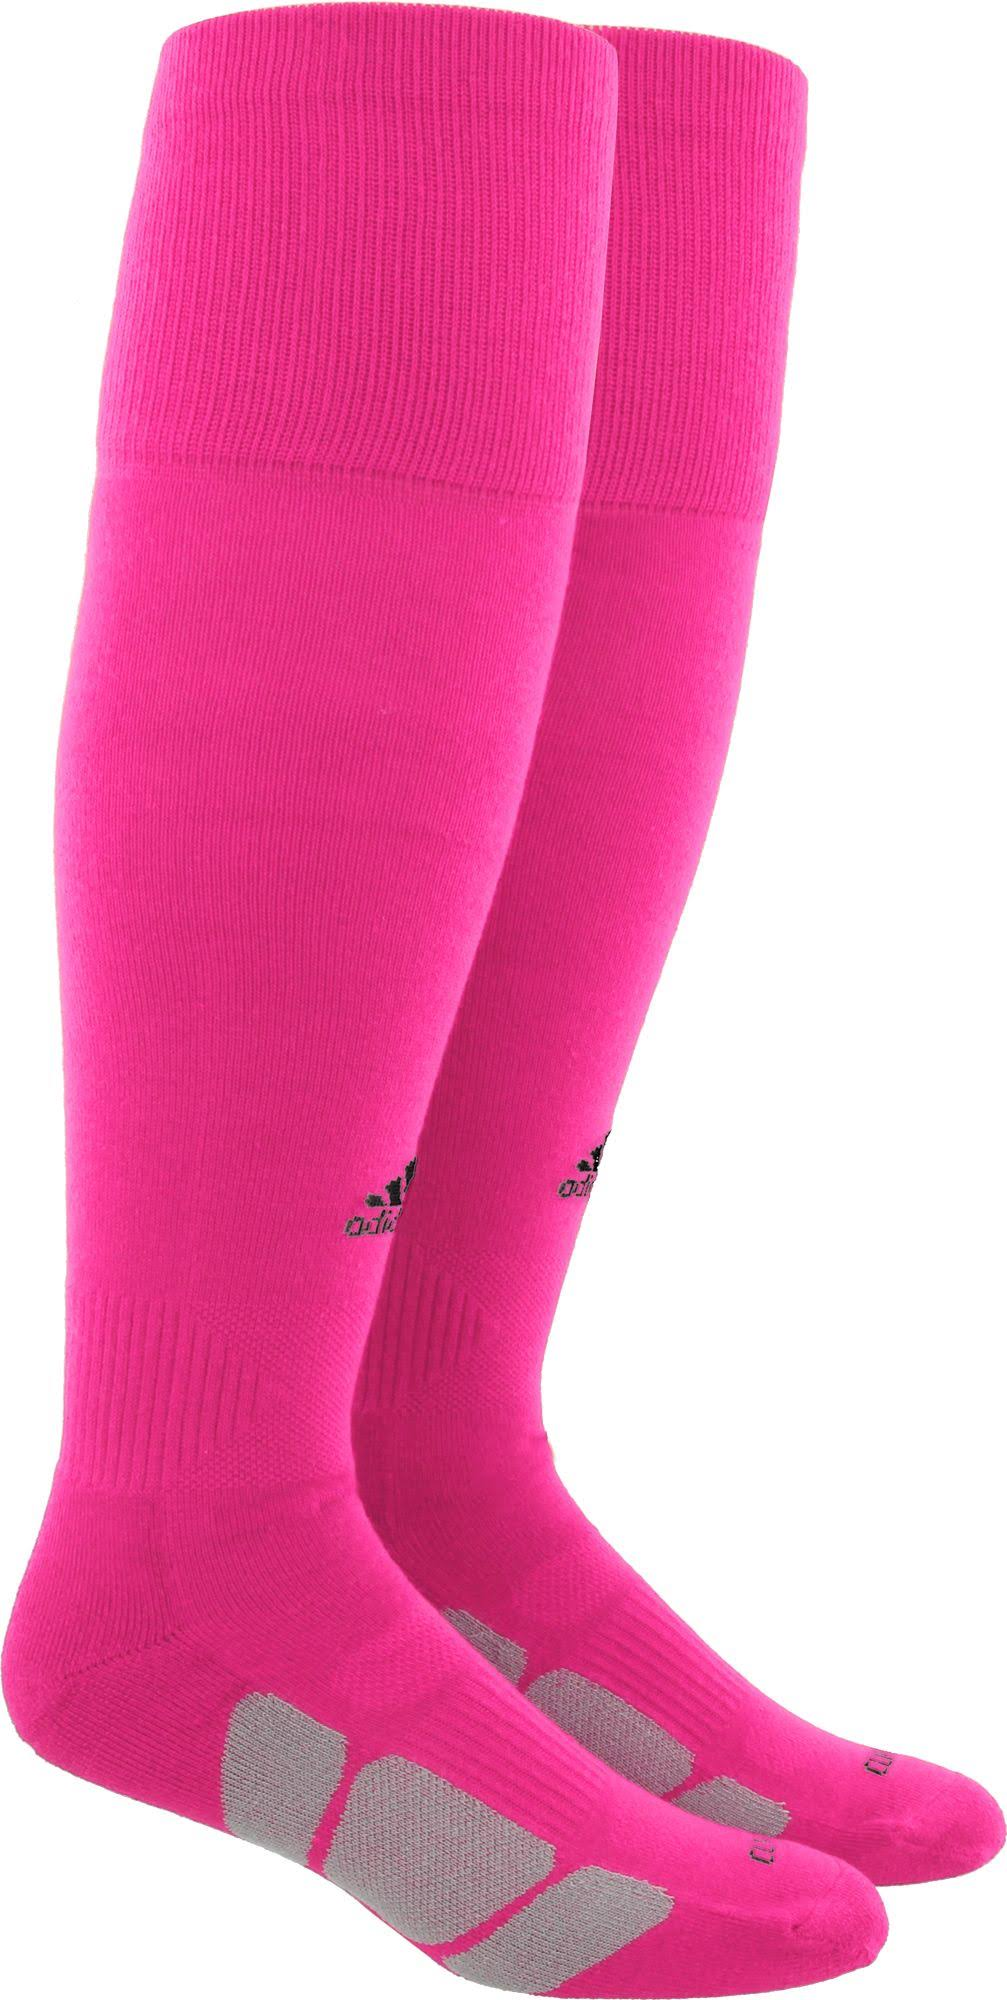 Adidas Utility Long Soccer Socks - Neon Pink, Pink, X-Small